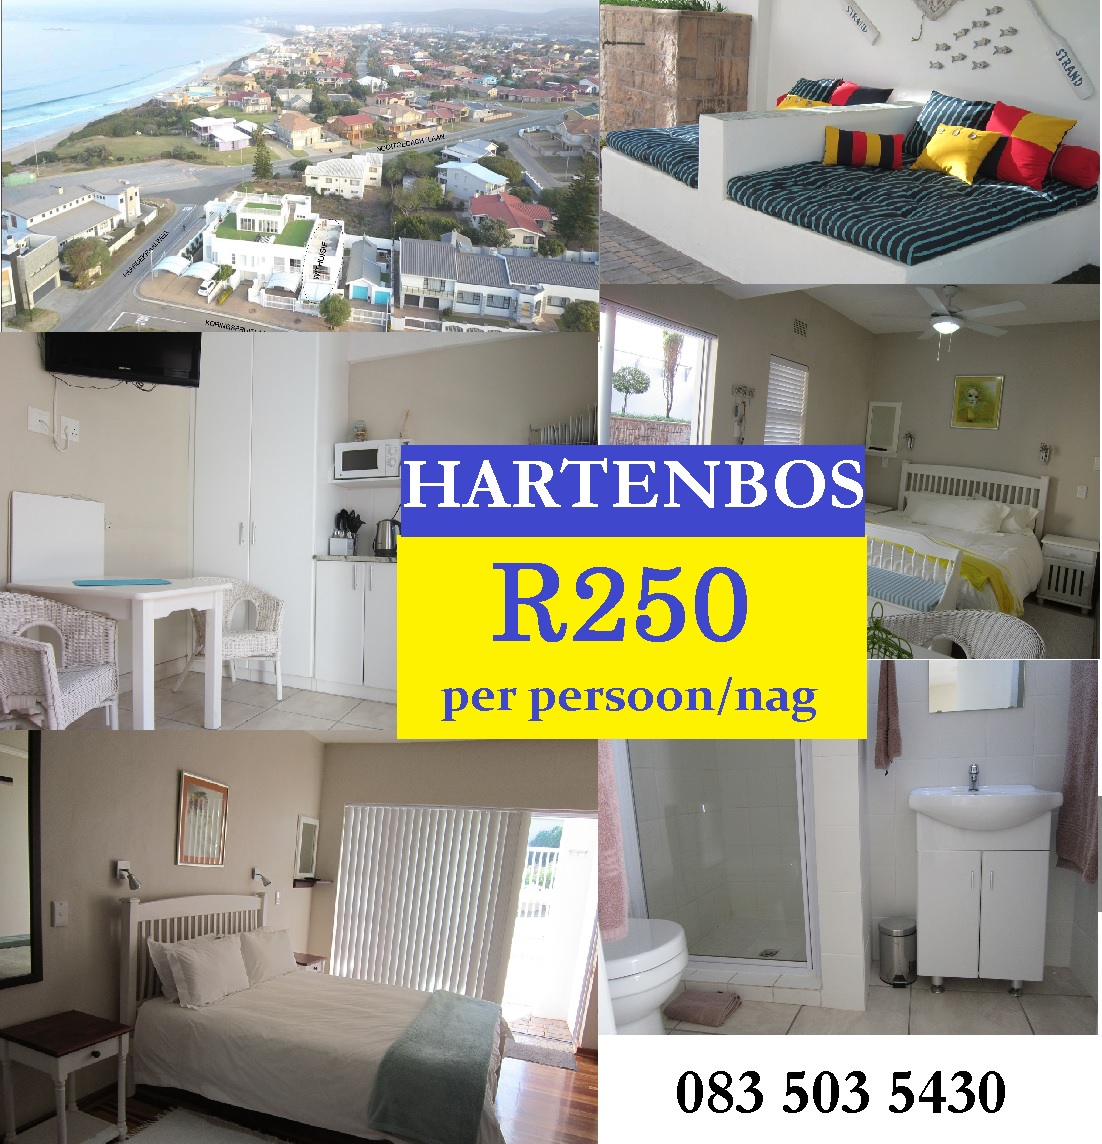 Accommodation in Hartenbos @R250 per person